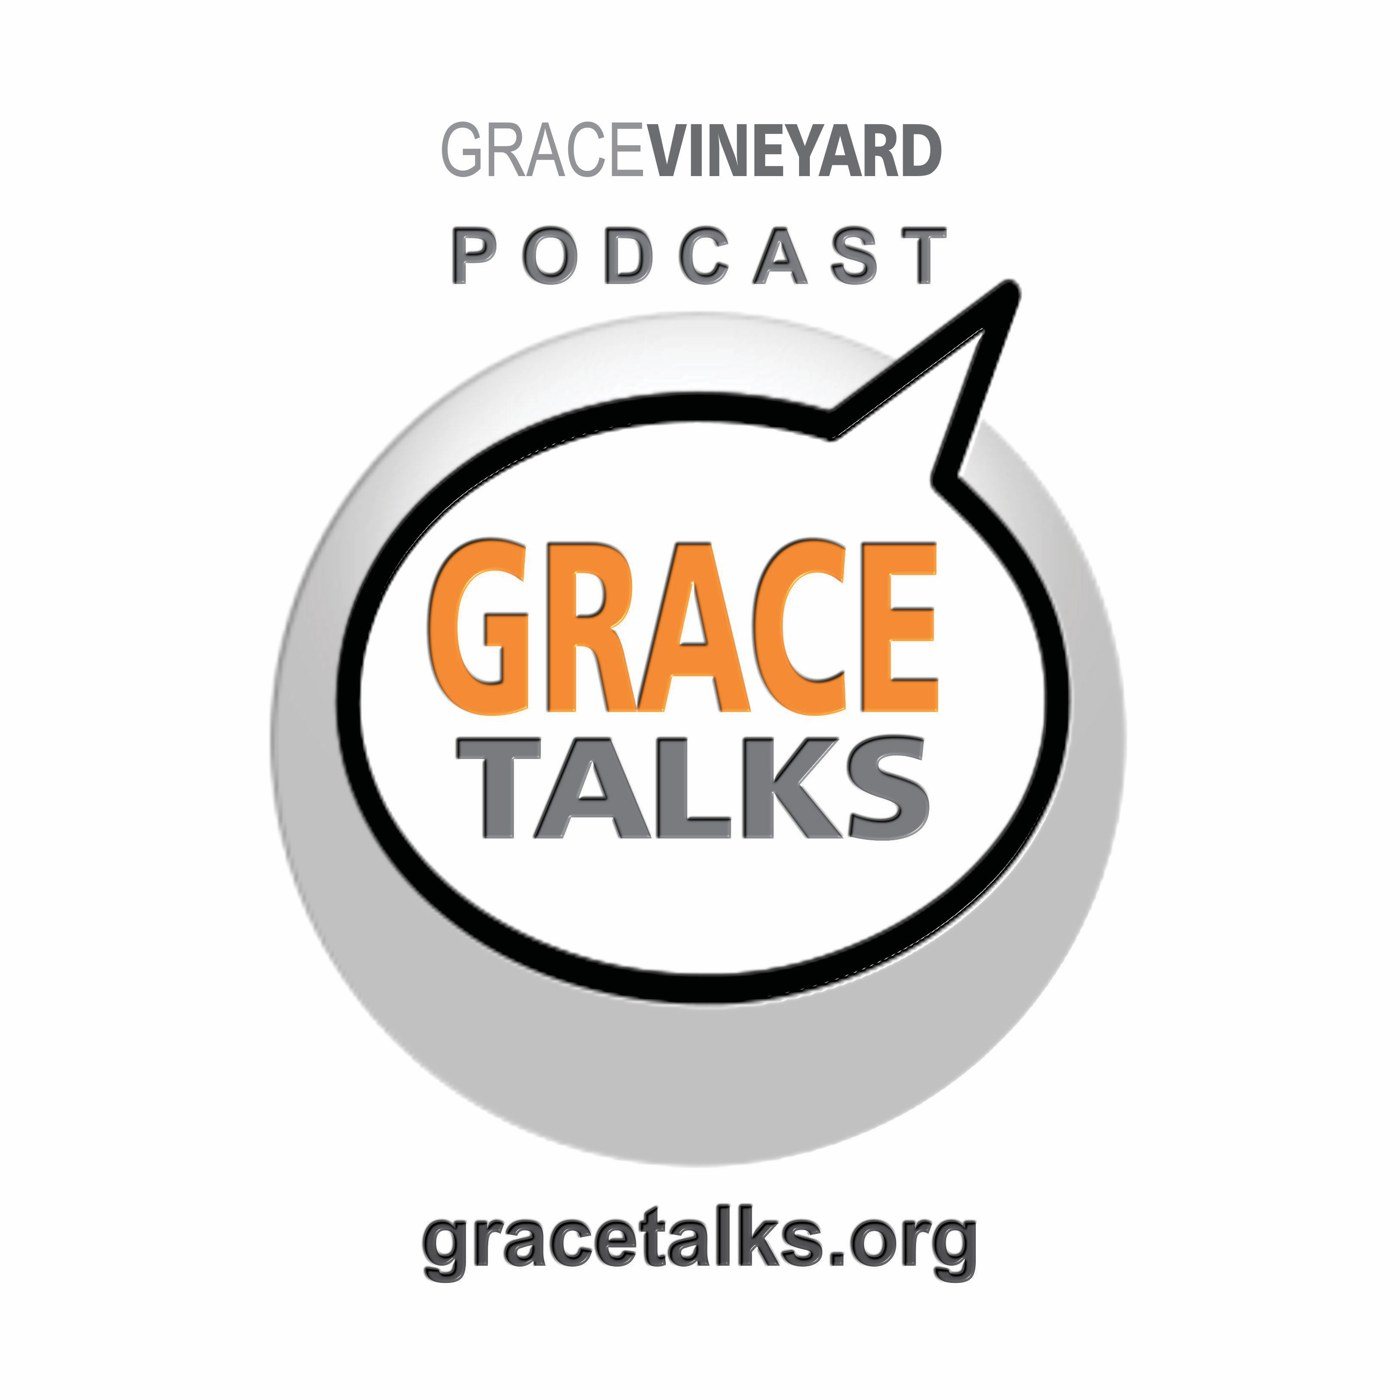 GRACE TALKS: Grace Vineyard / Coastal Oceanside